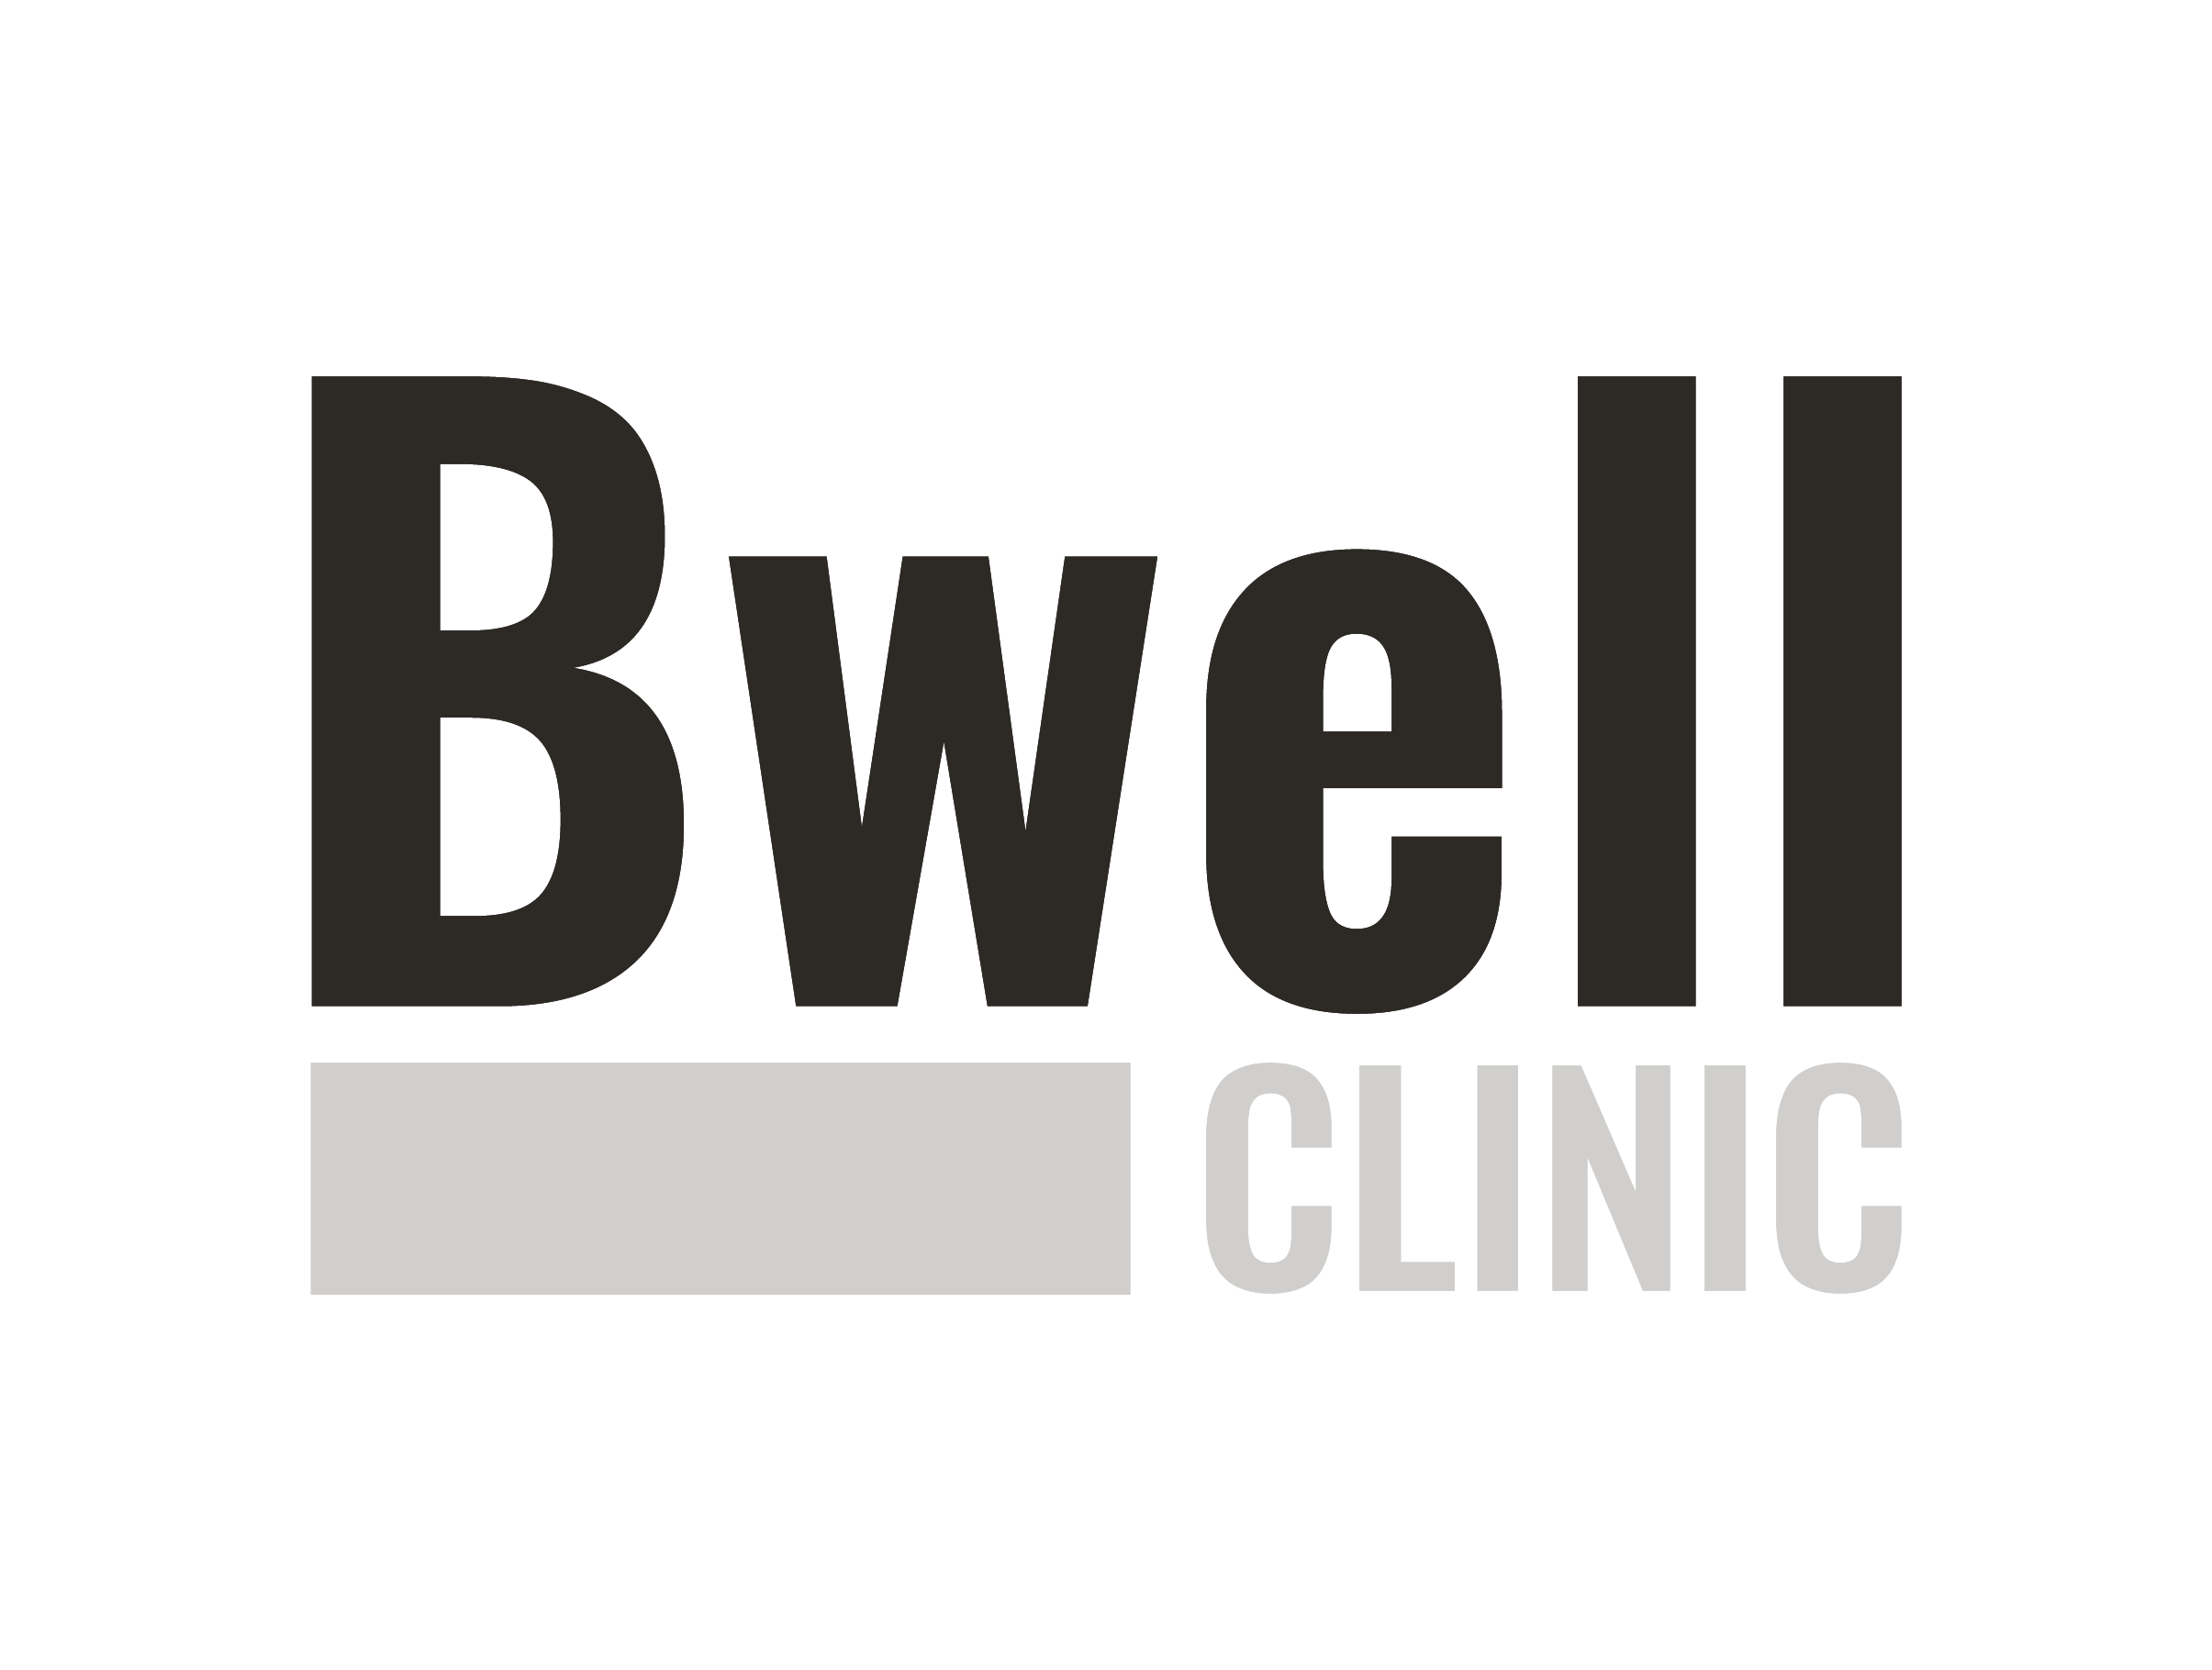 Bwell Clinic